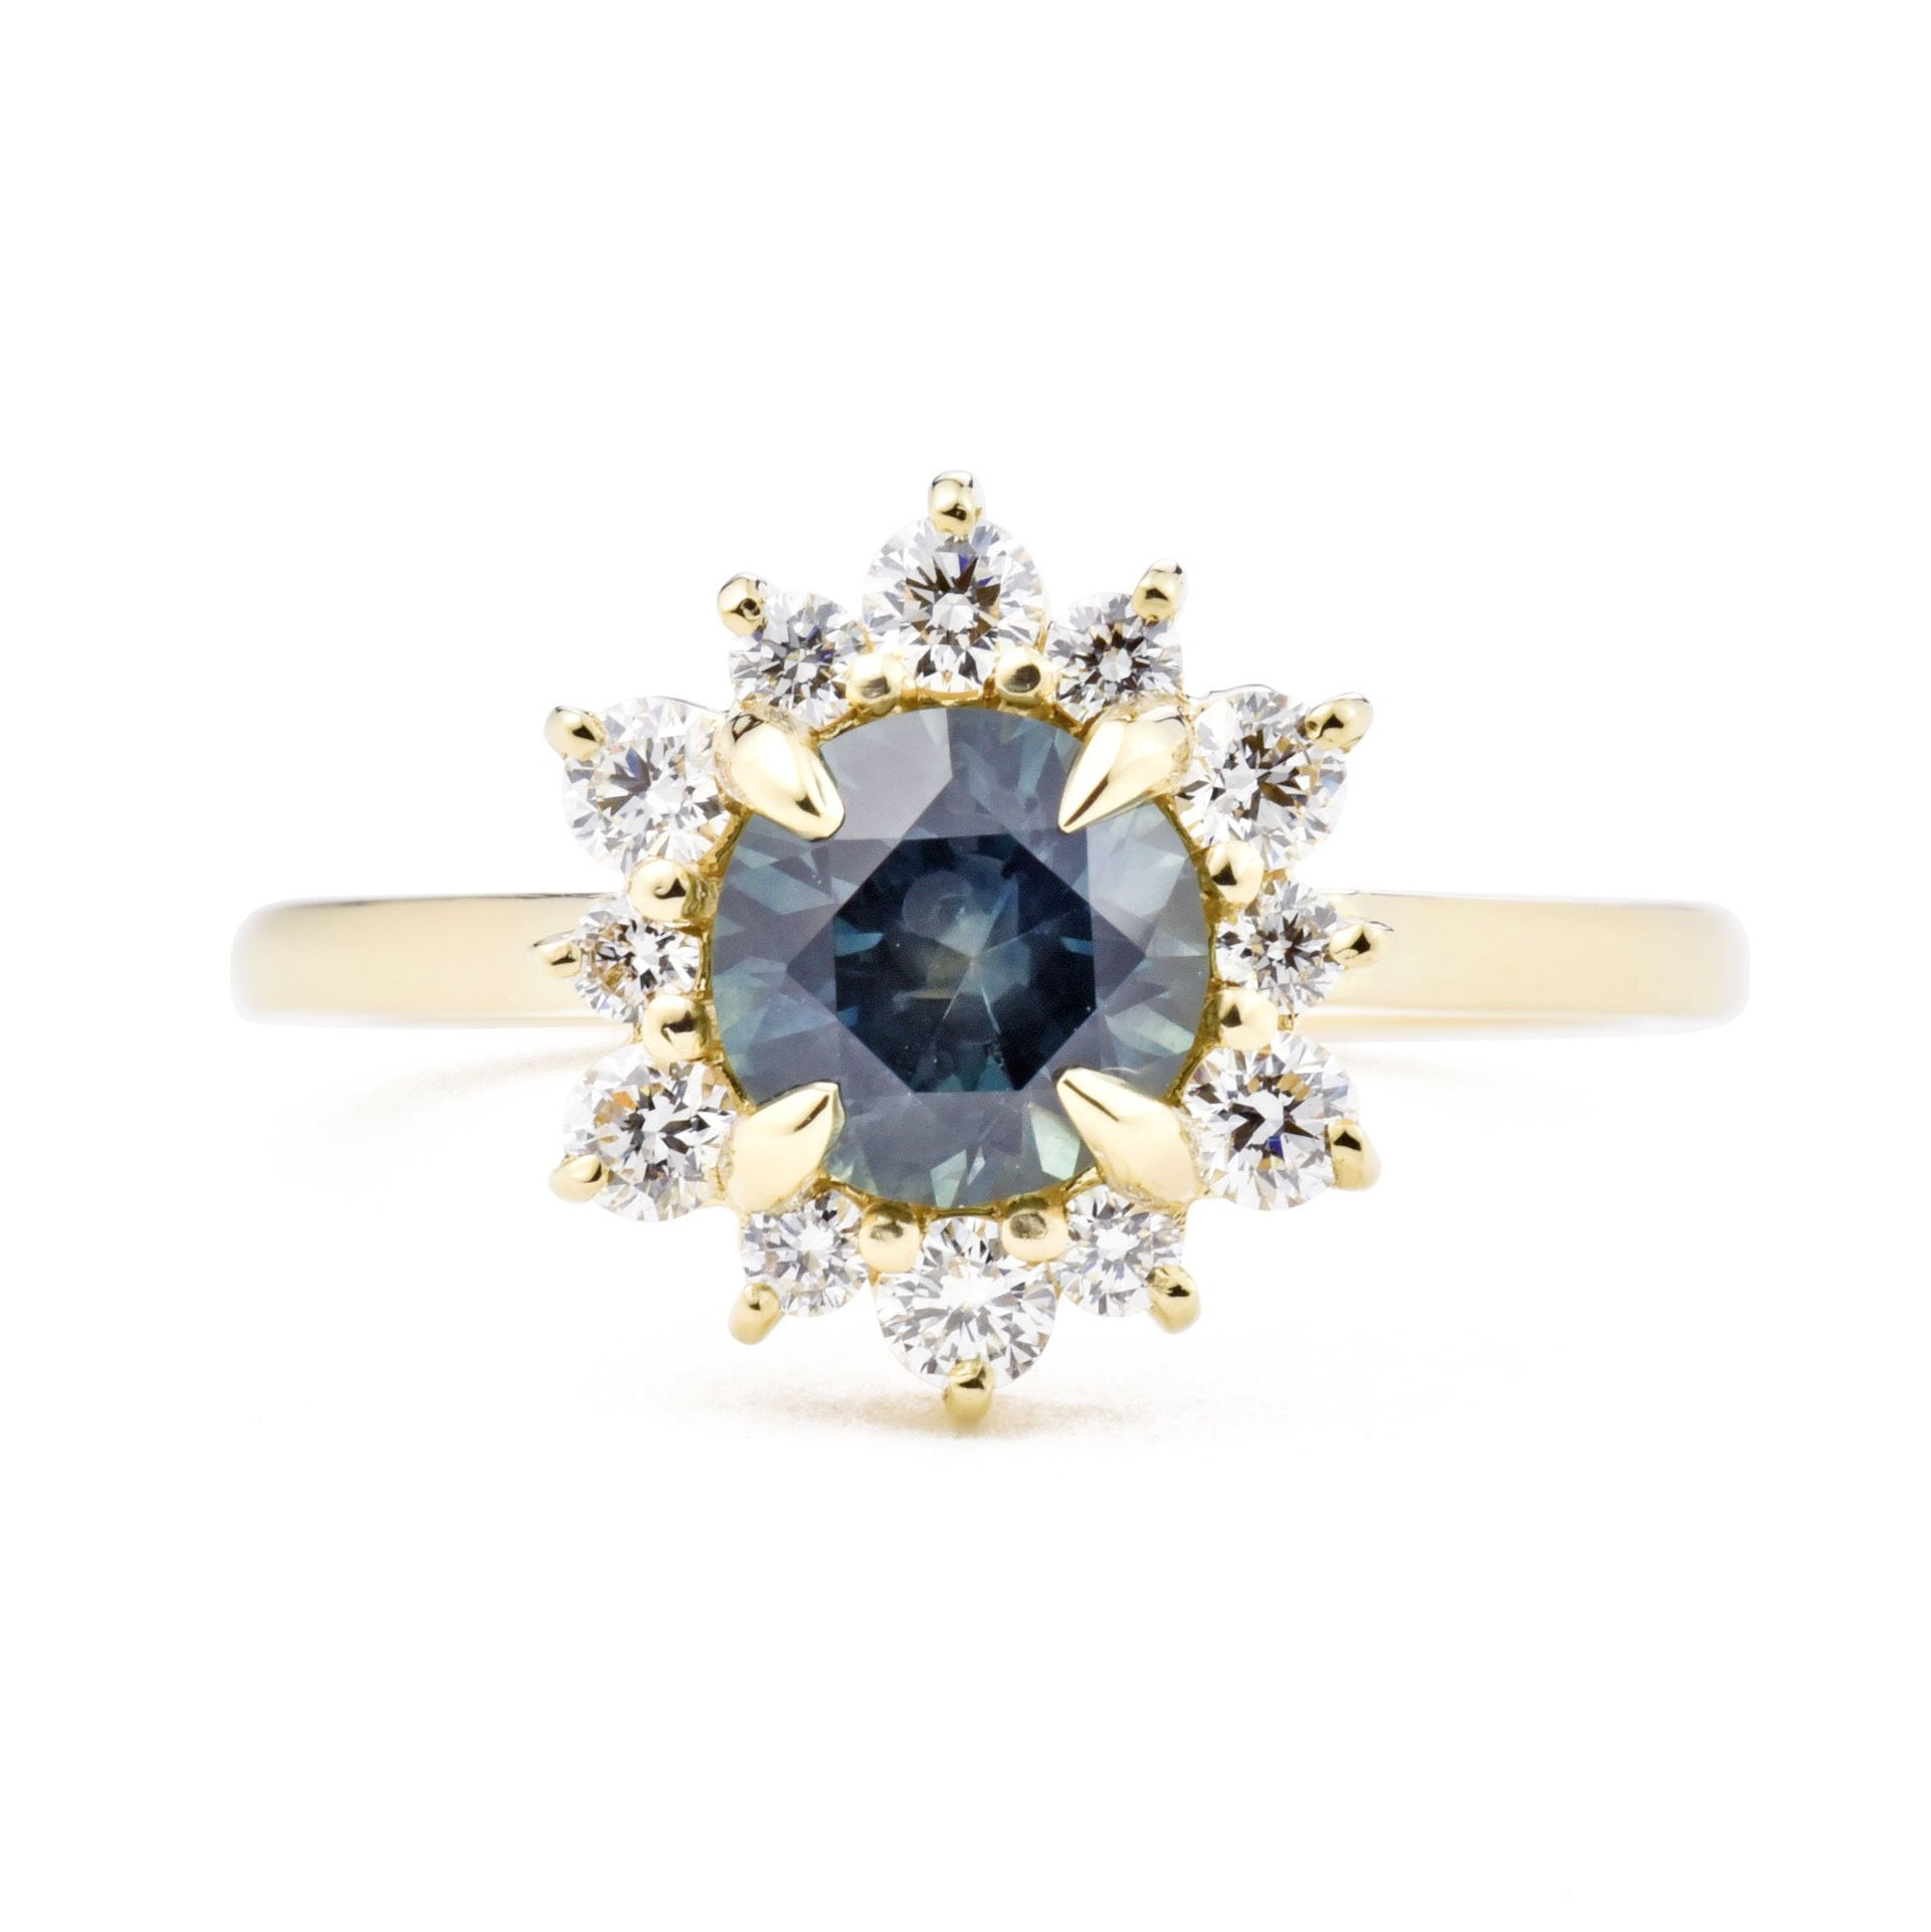 1.12ct Marisol Teal Blue Sapphire and Diamond Engagement Ring